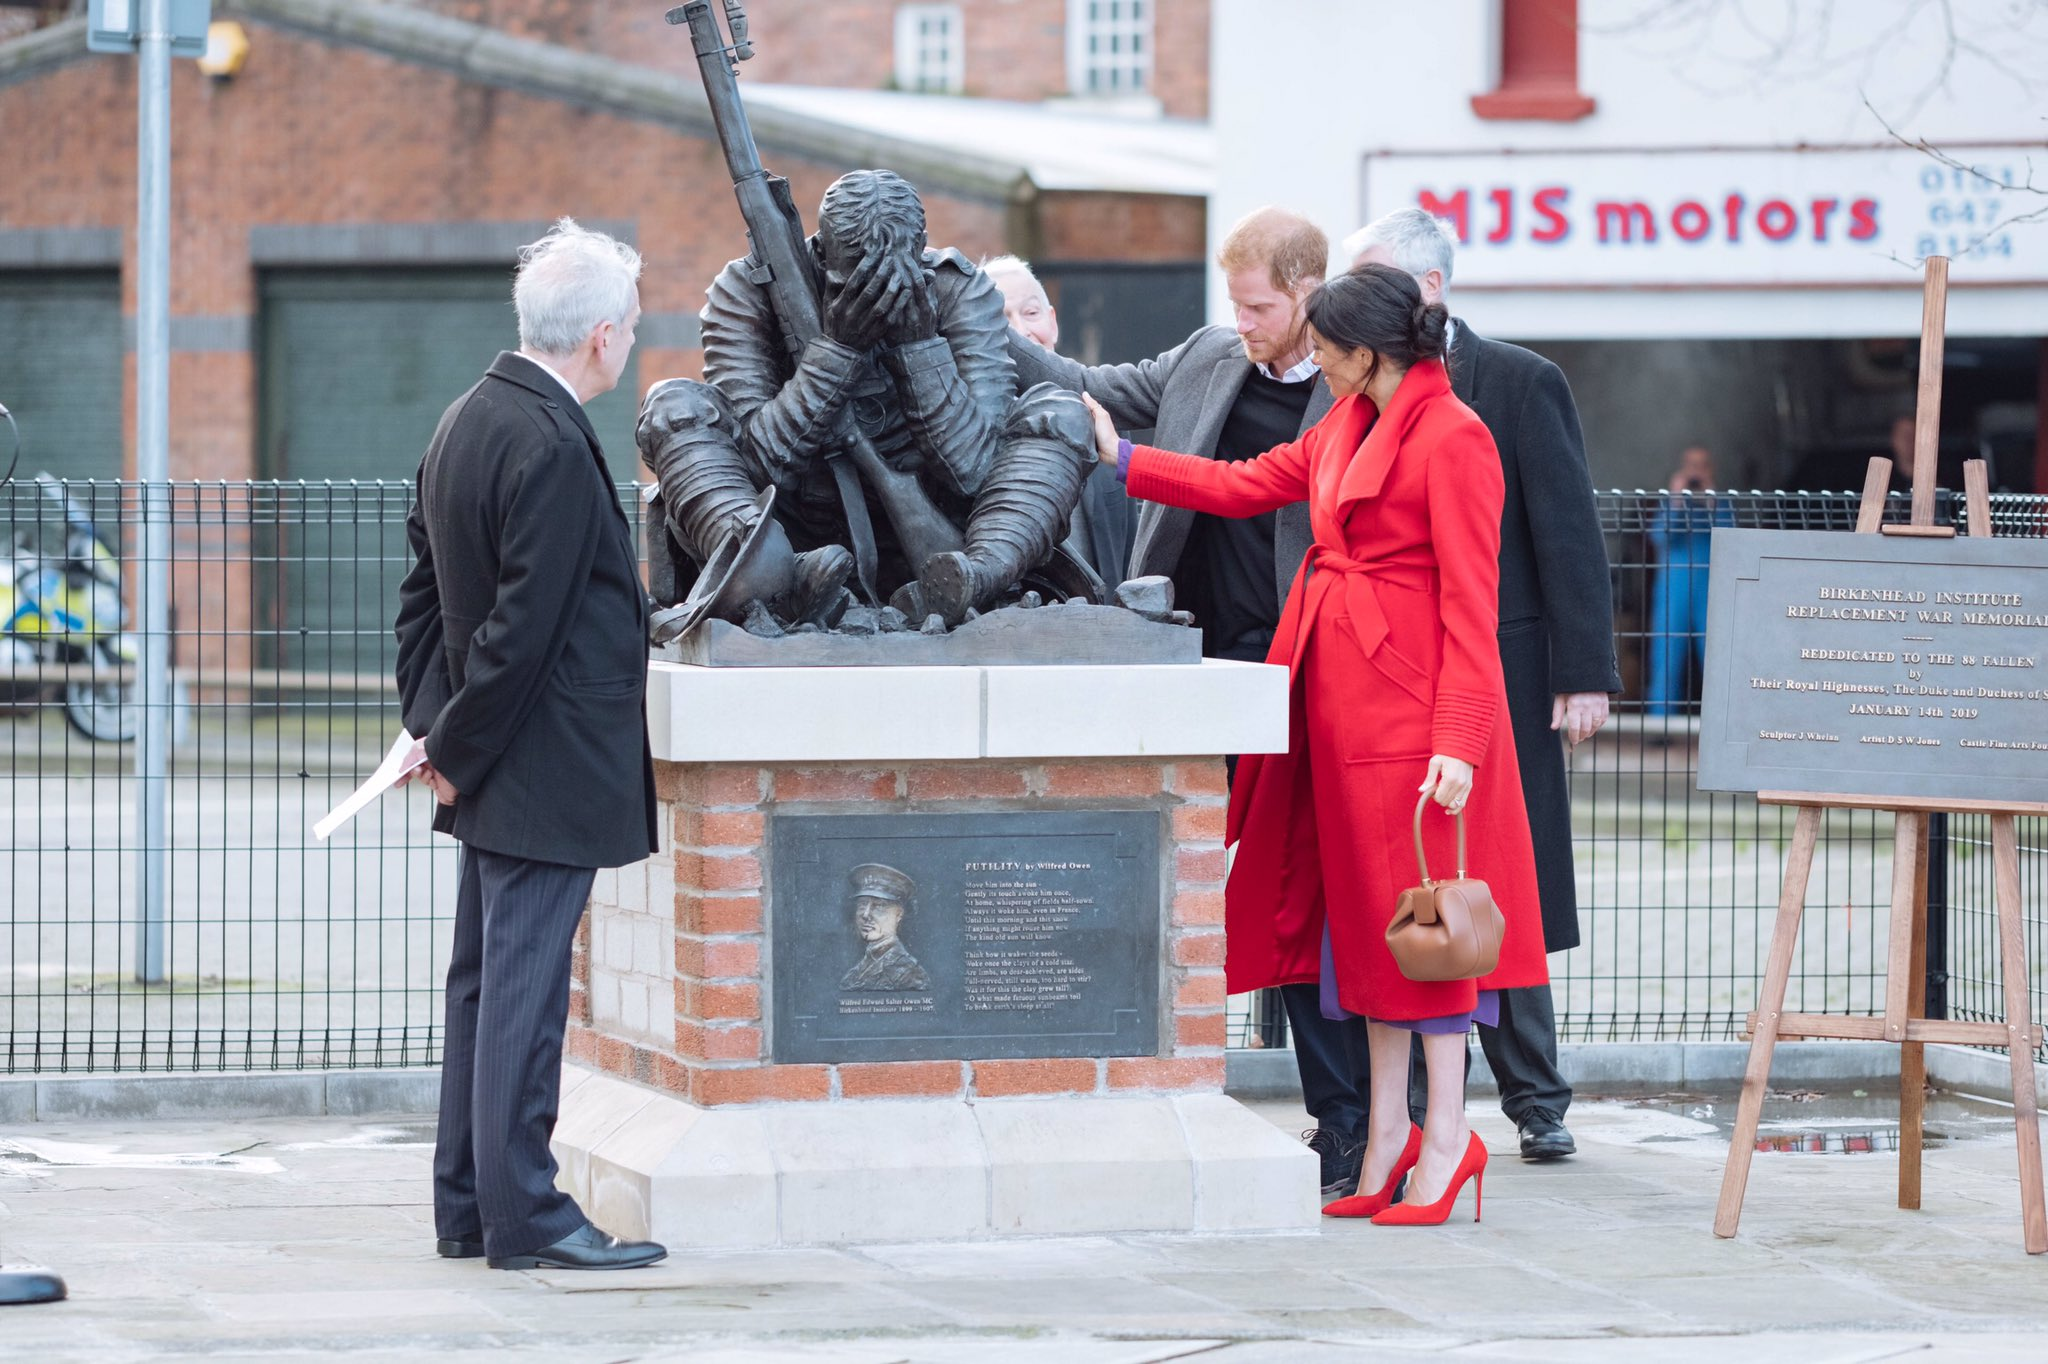 The Duke and Duchess of Sussex view a new sculpture erected at Hamilton Square in November to mark the 100th anniversary of Wilfred Owen's death. #RoyalVisitBirkenhead https://t.co/3KoB8H92VR